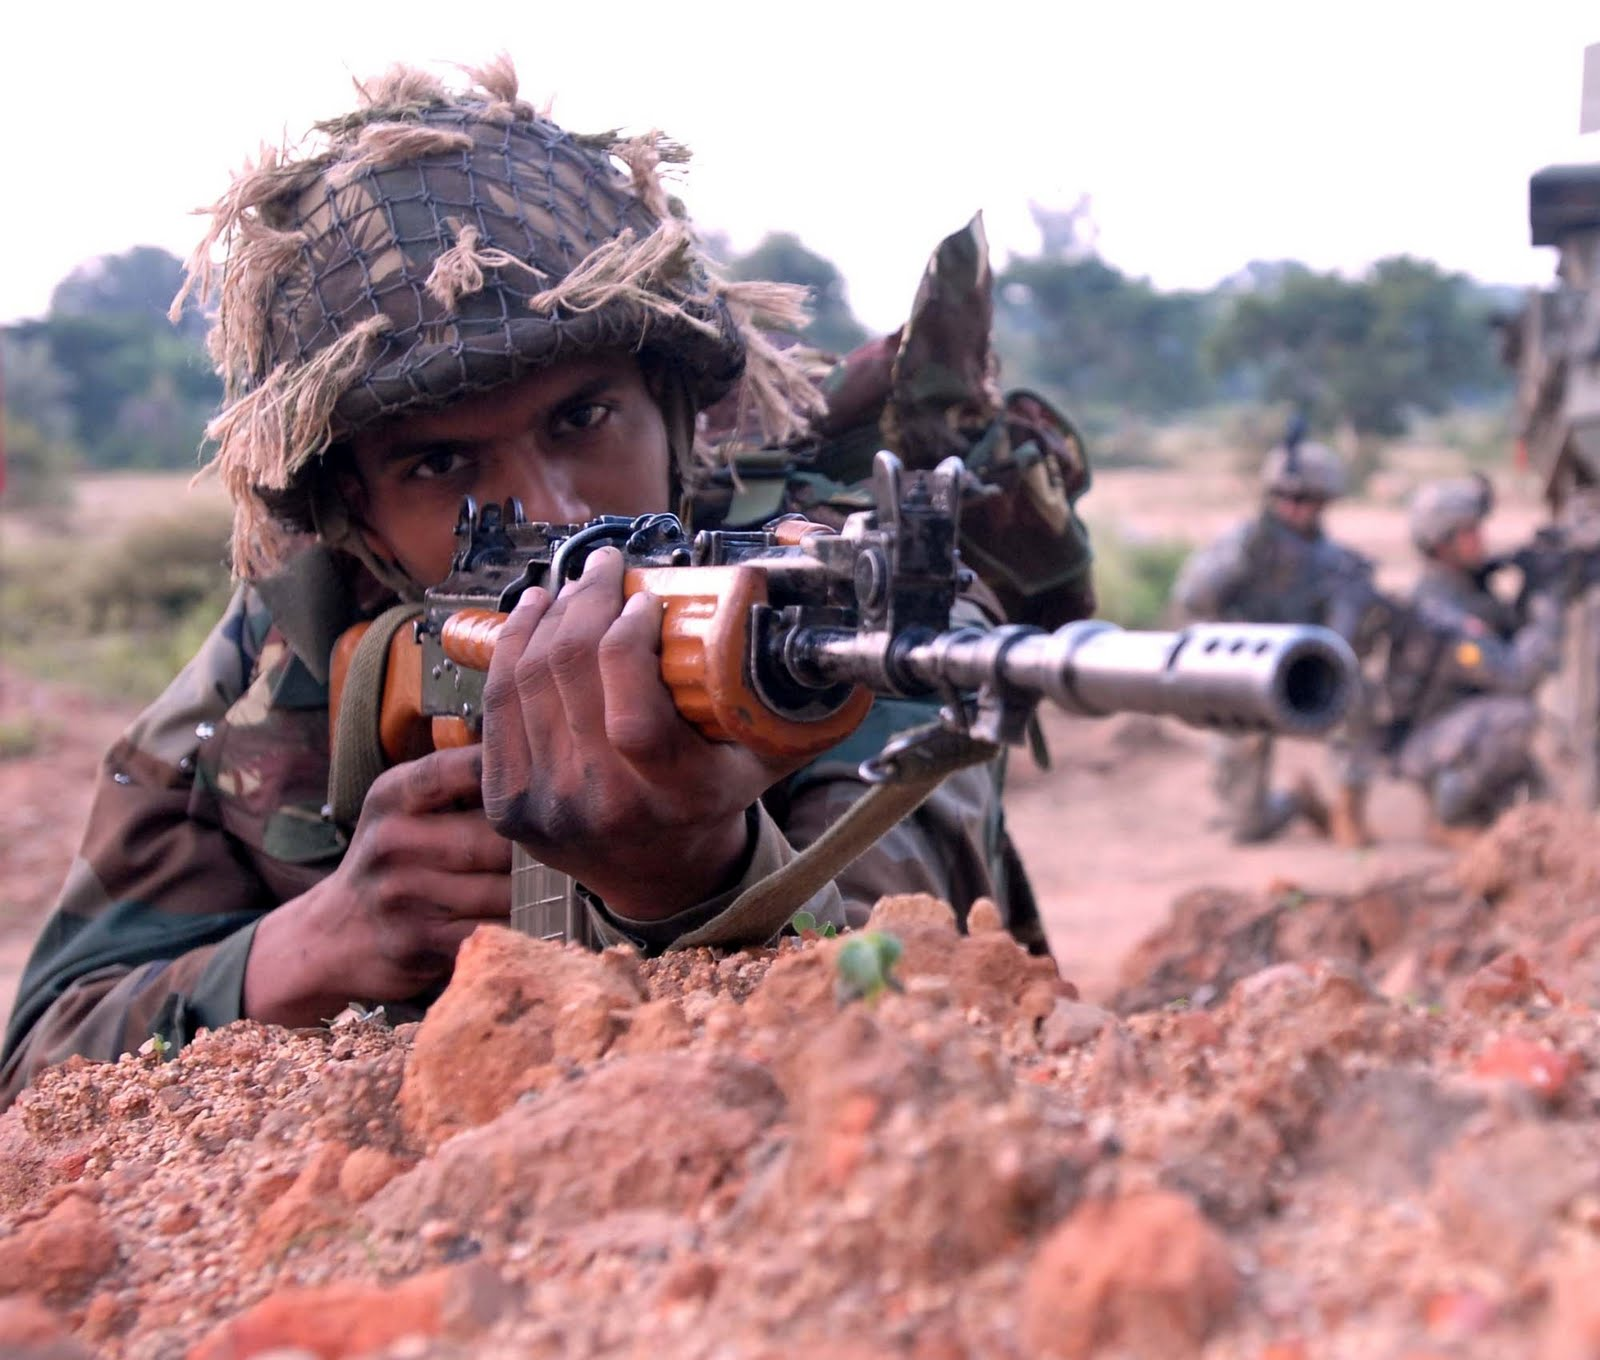 Hd wallpaper indian army - Indian Army